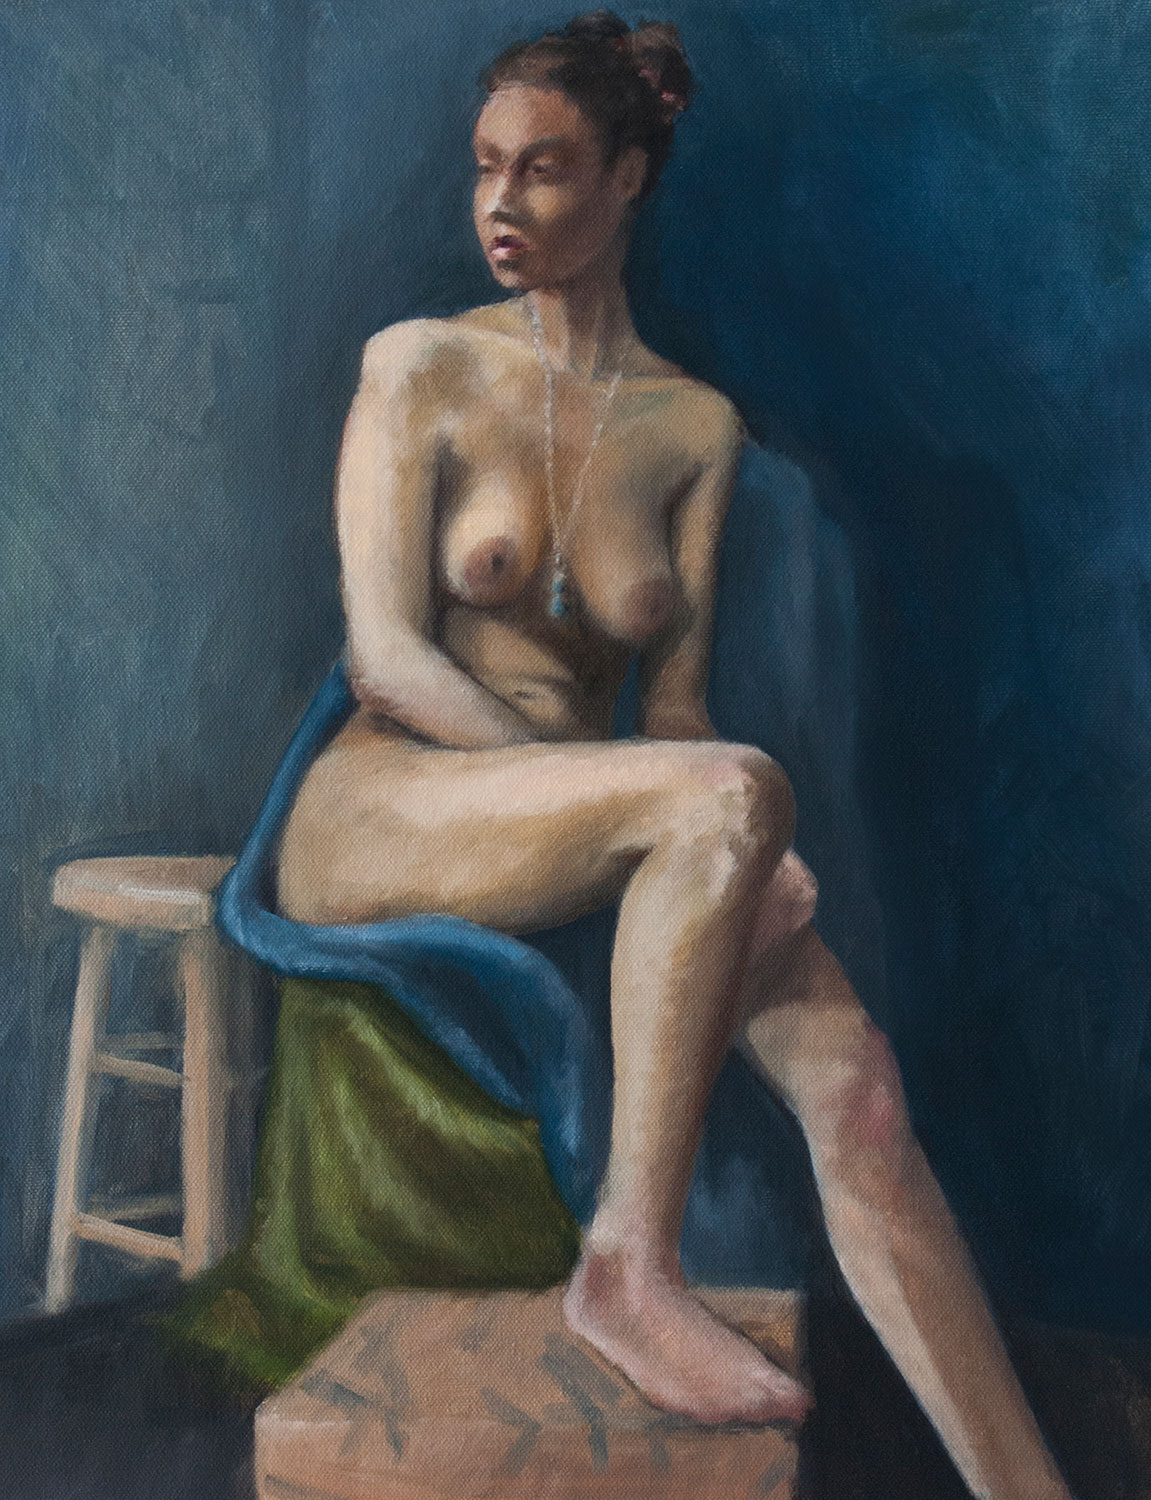 2016, Figure study.   Oil on canvas, 16 x 20 in. (41 x 51cm)